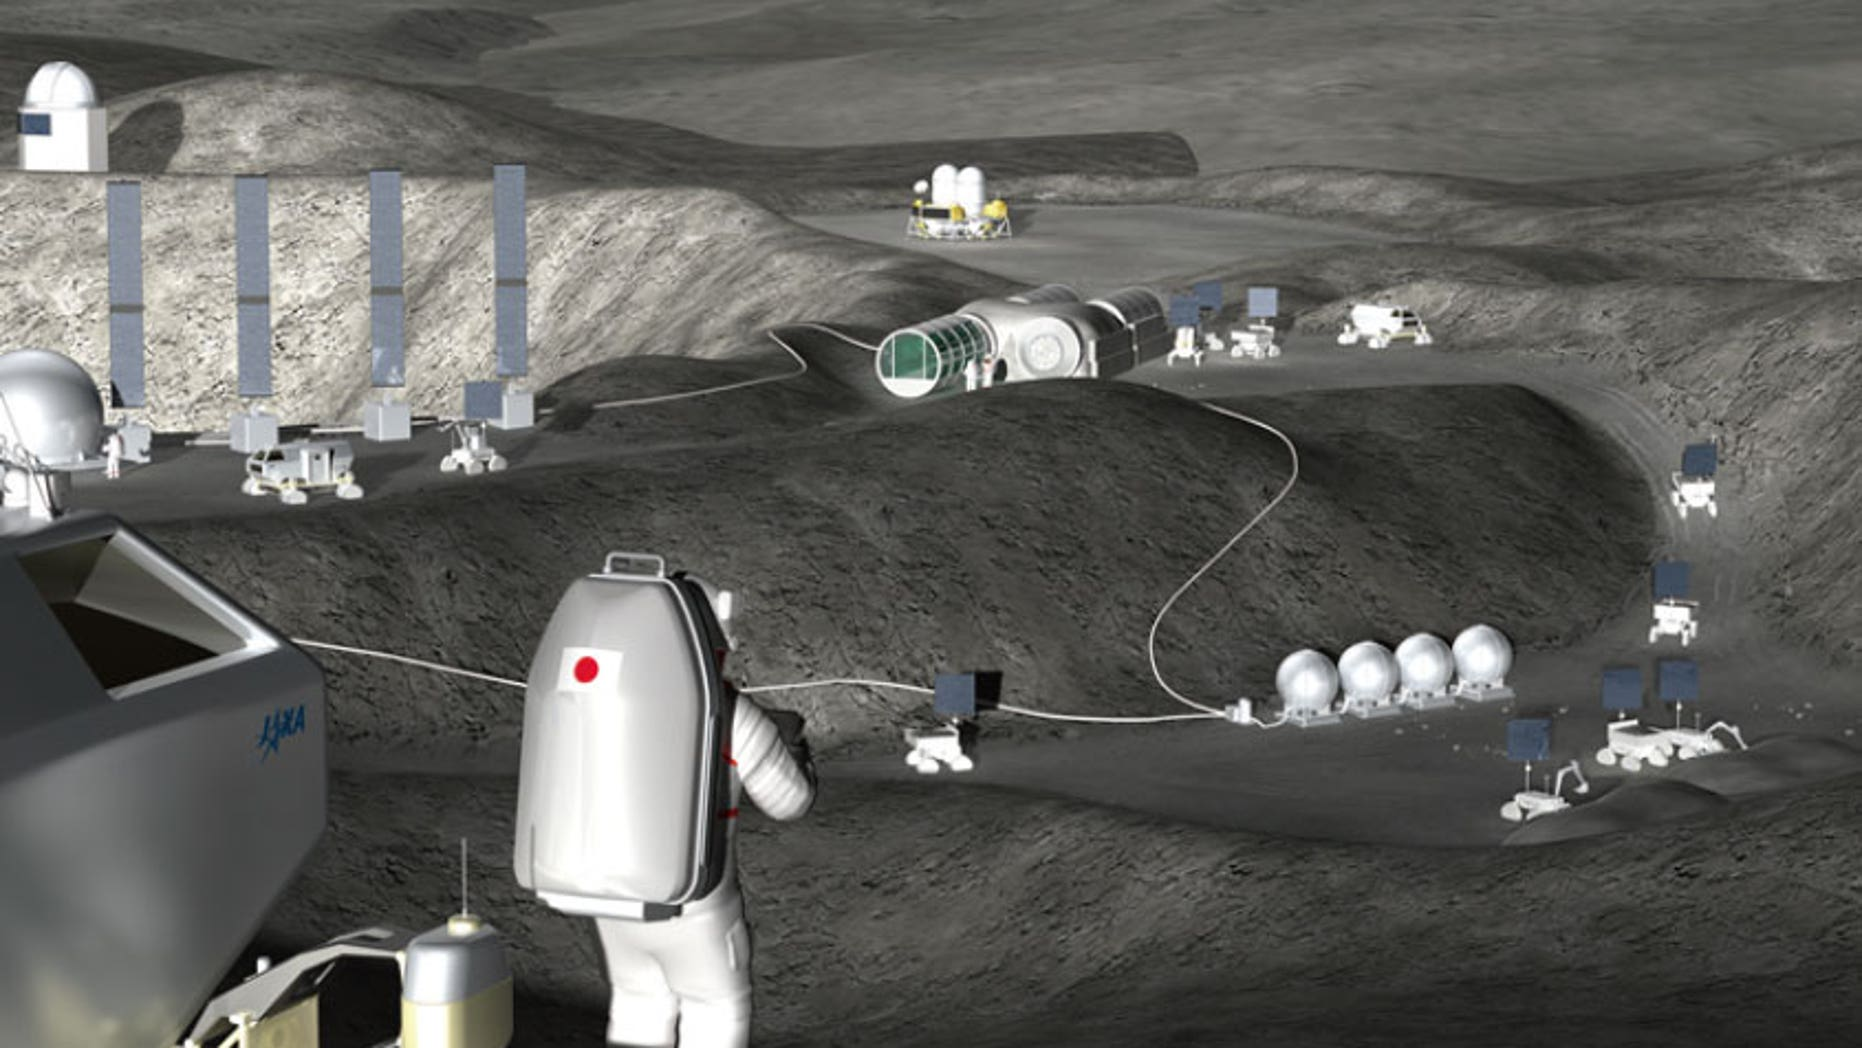 A moon base could be constructed remotely.